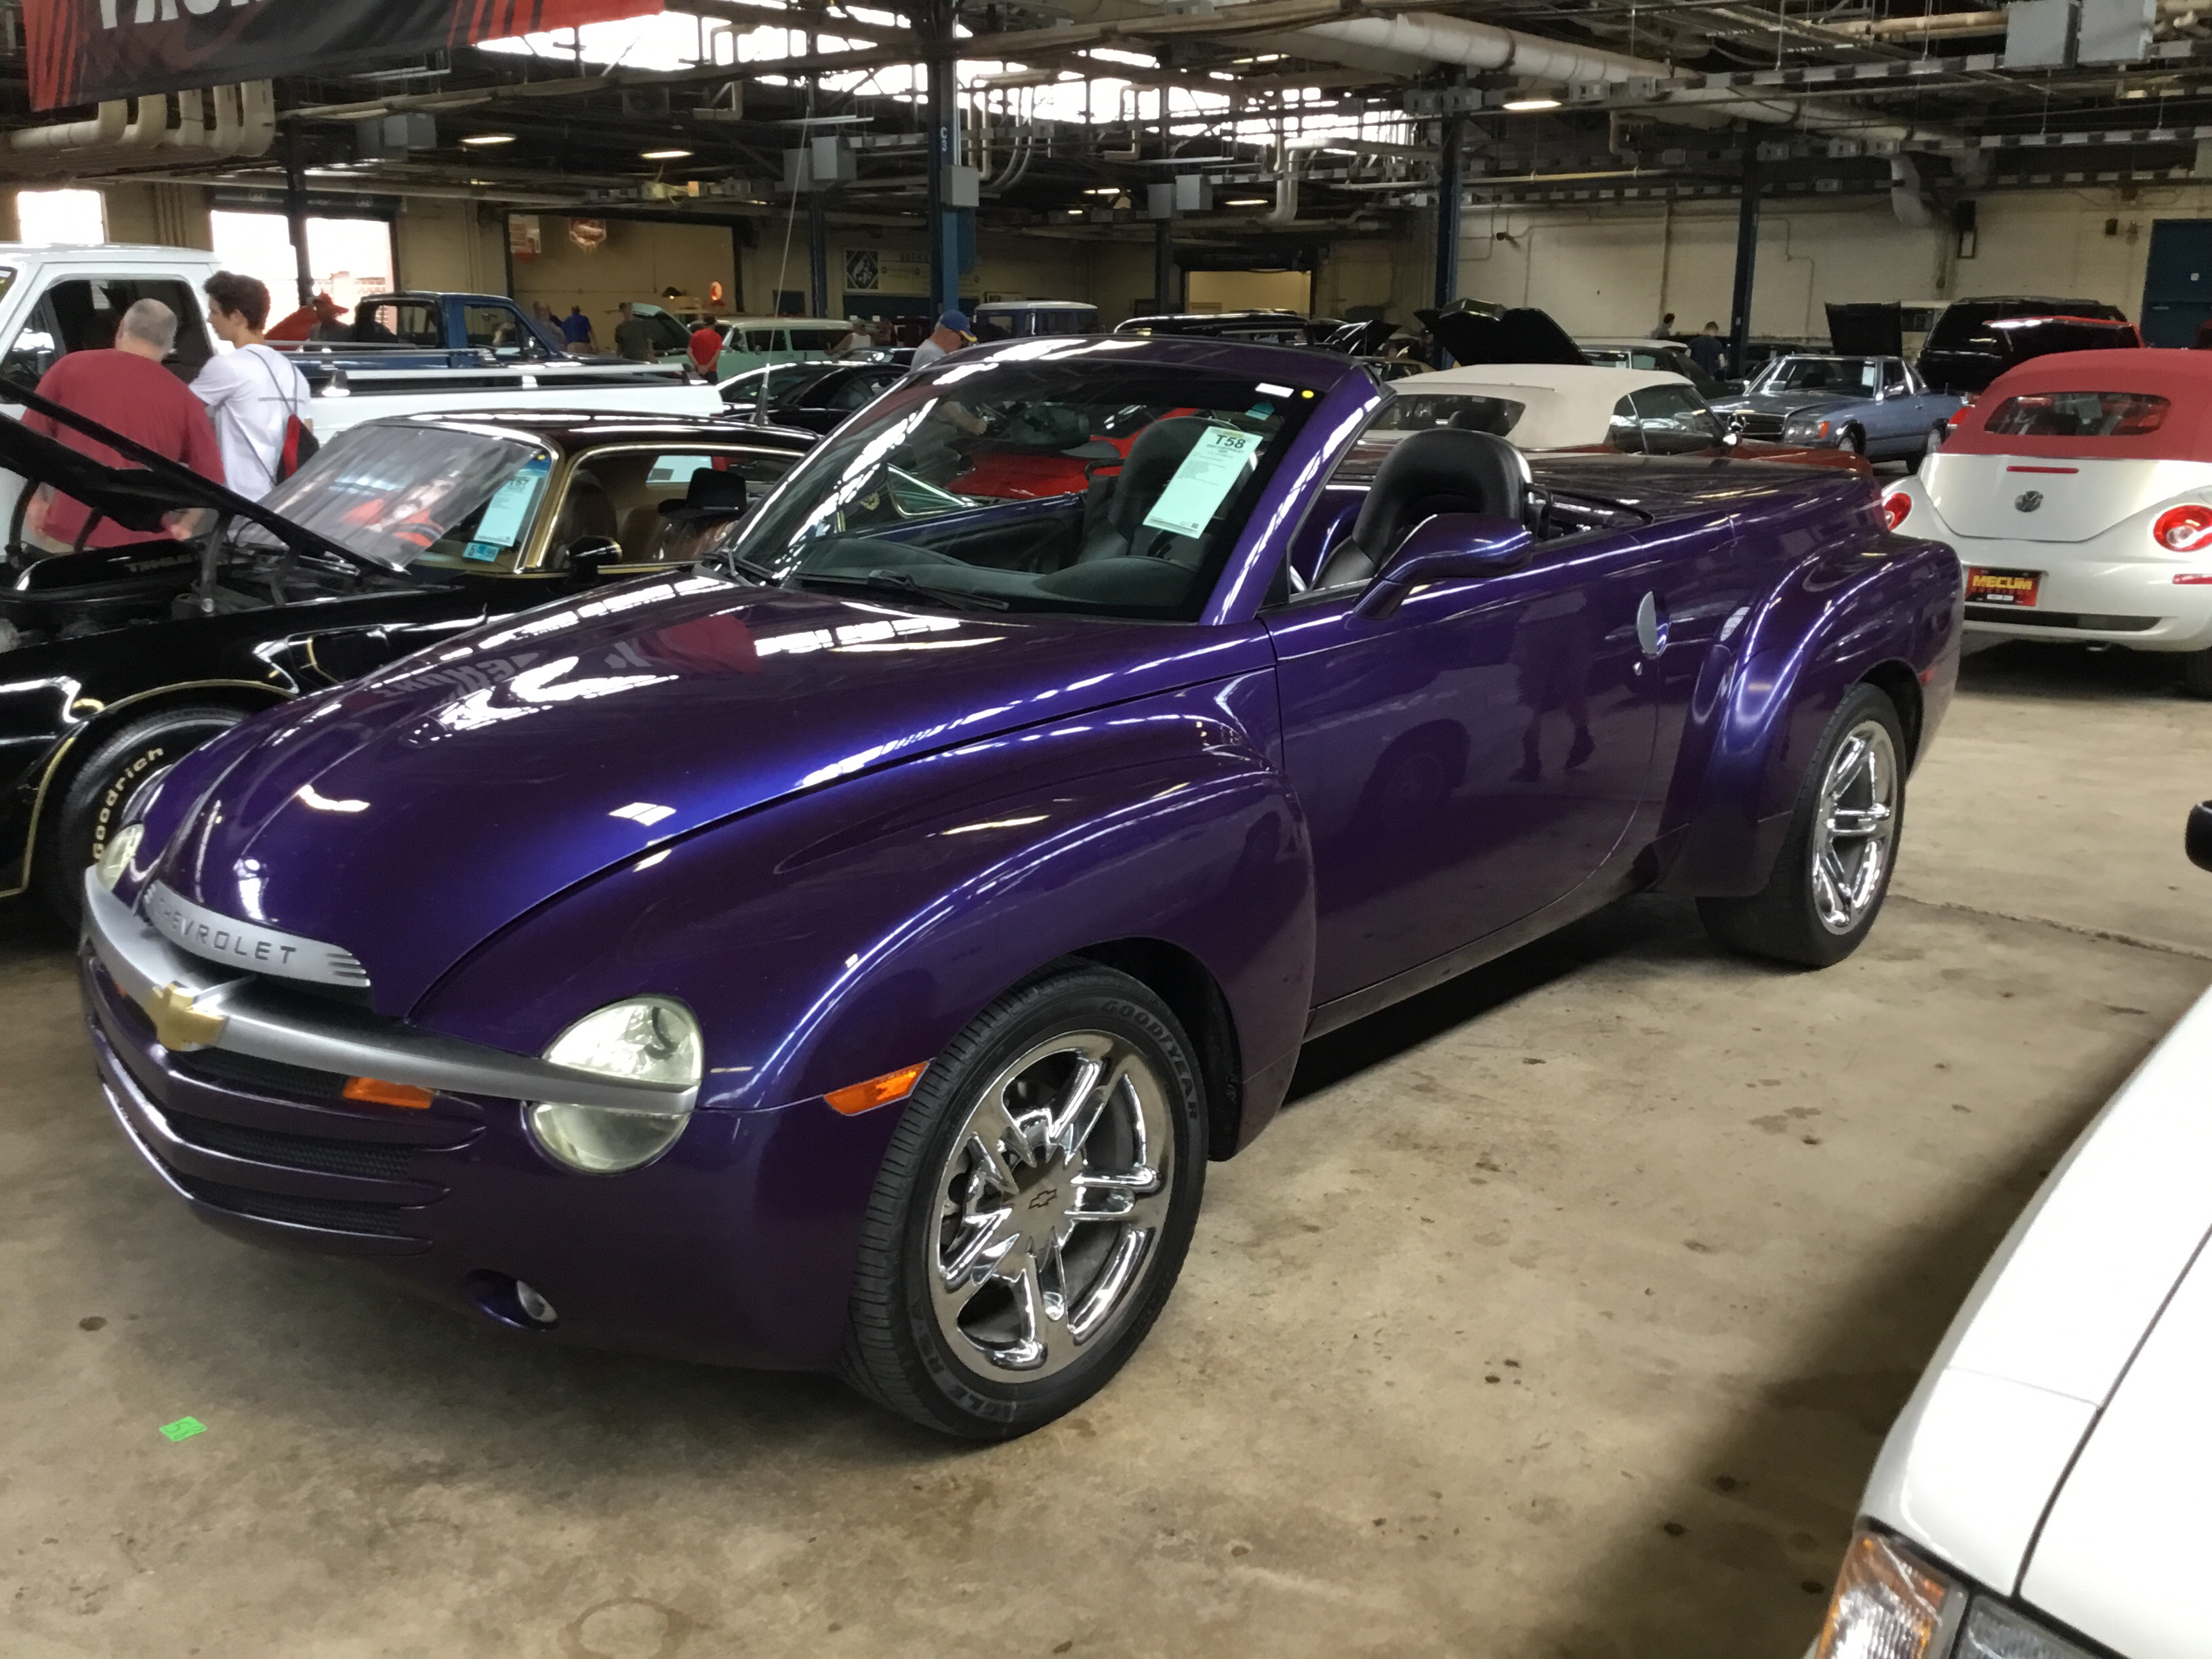 2006 Chevrolet Ssr Values Hagerty Valuation Tool